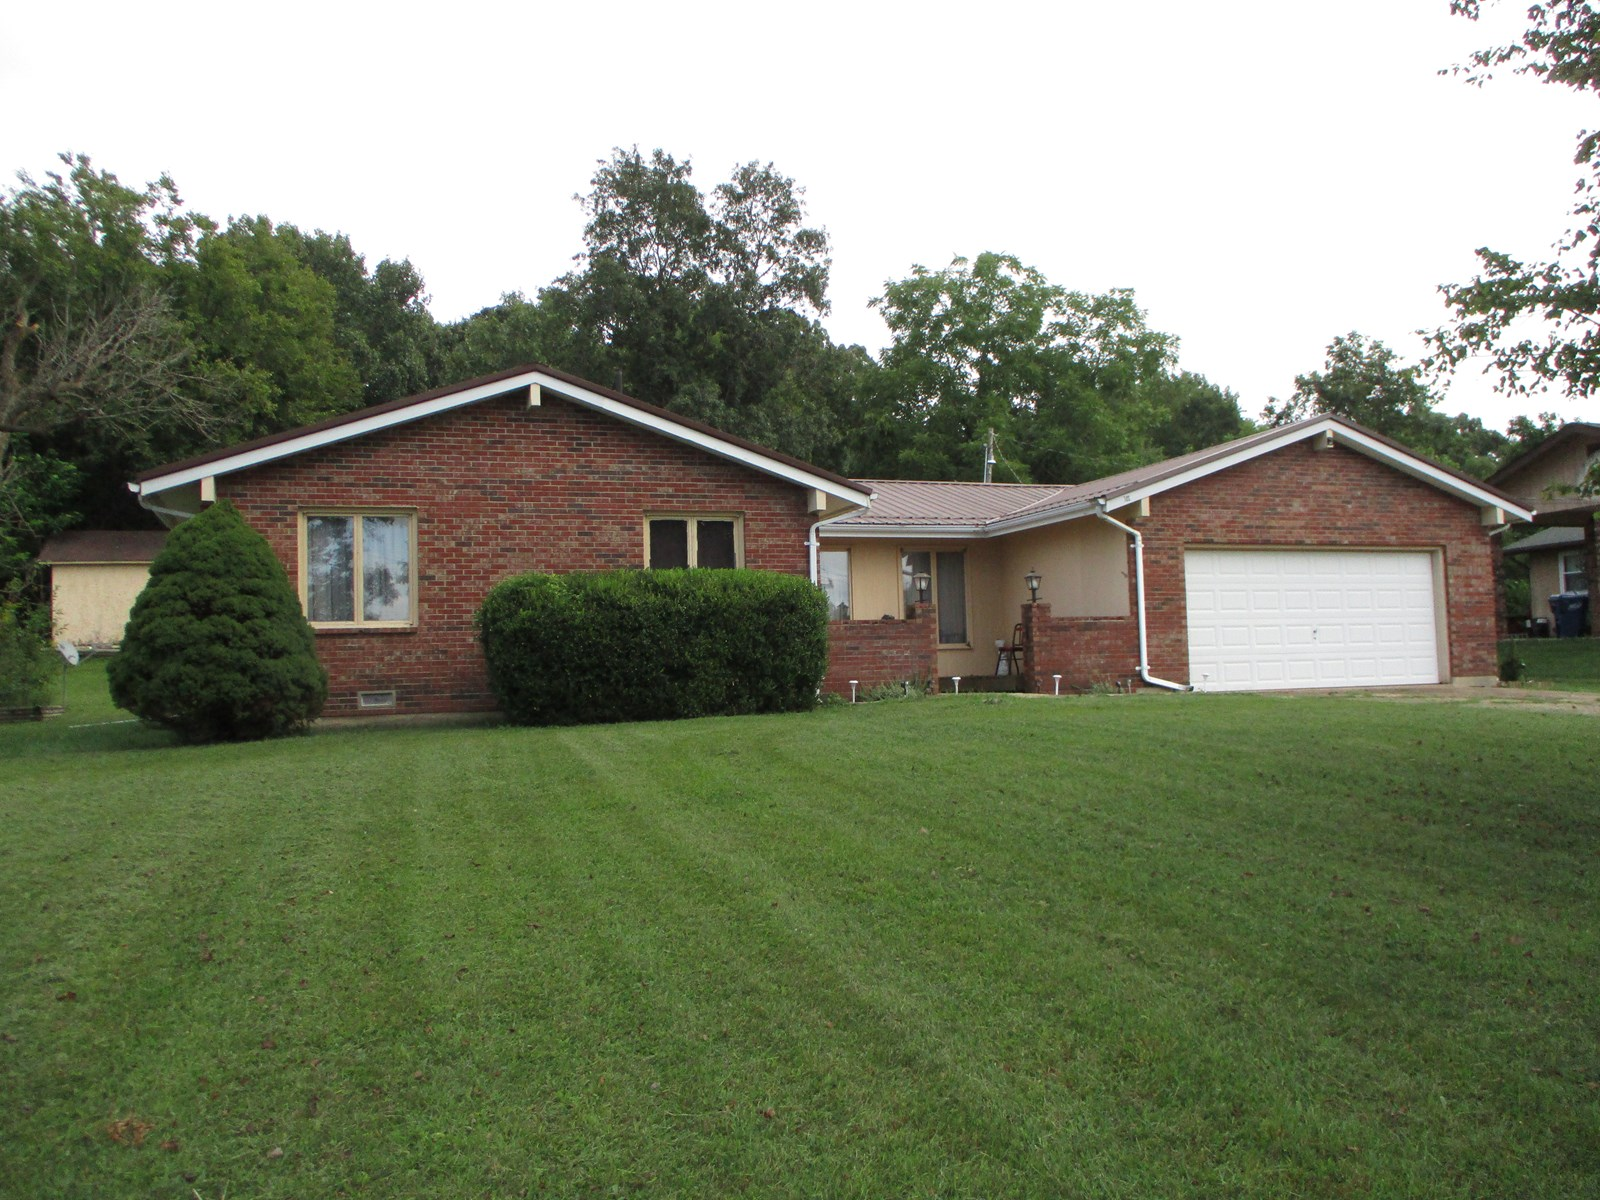 3 bedroom home, close to high school. Large yard with garage